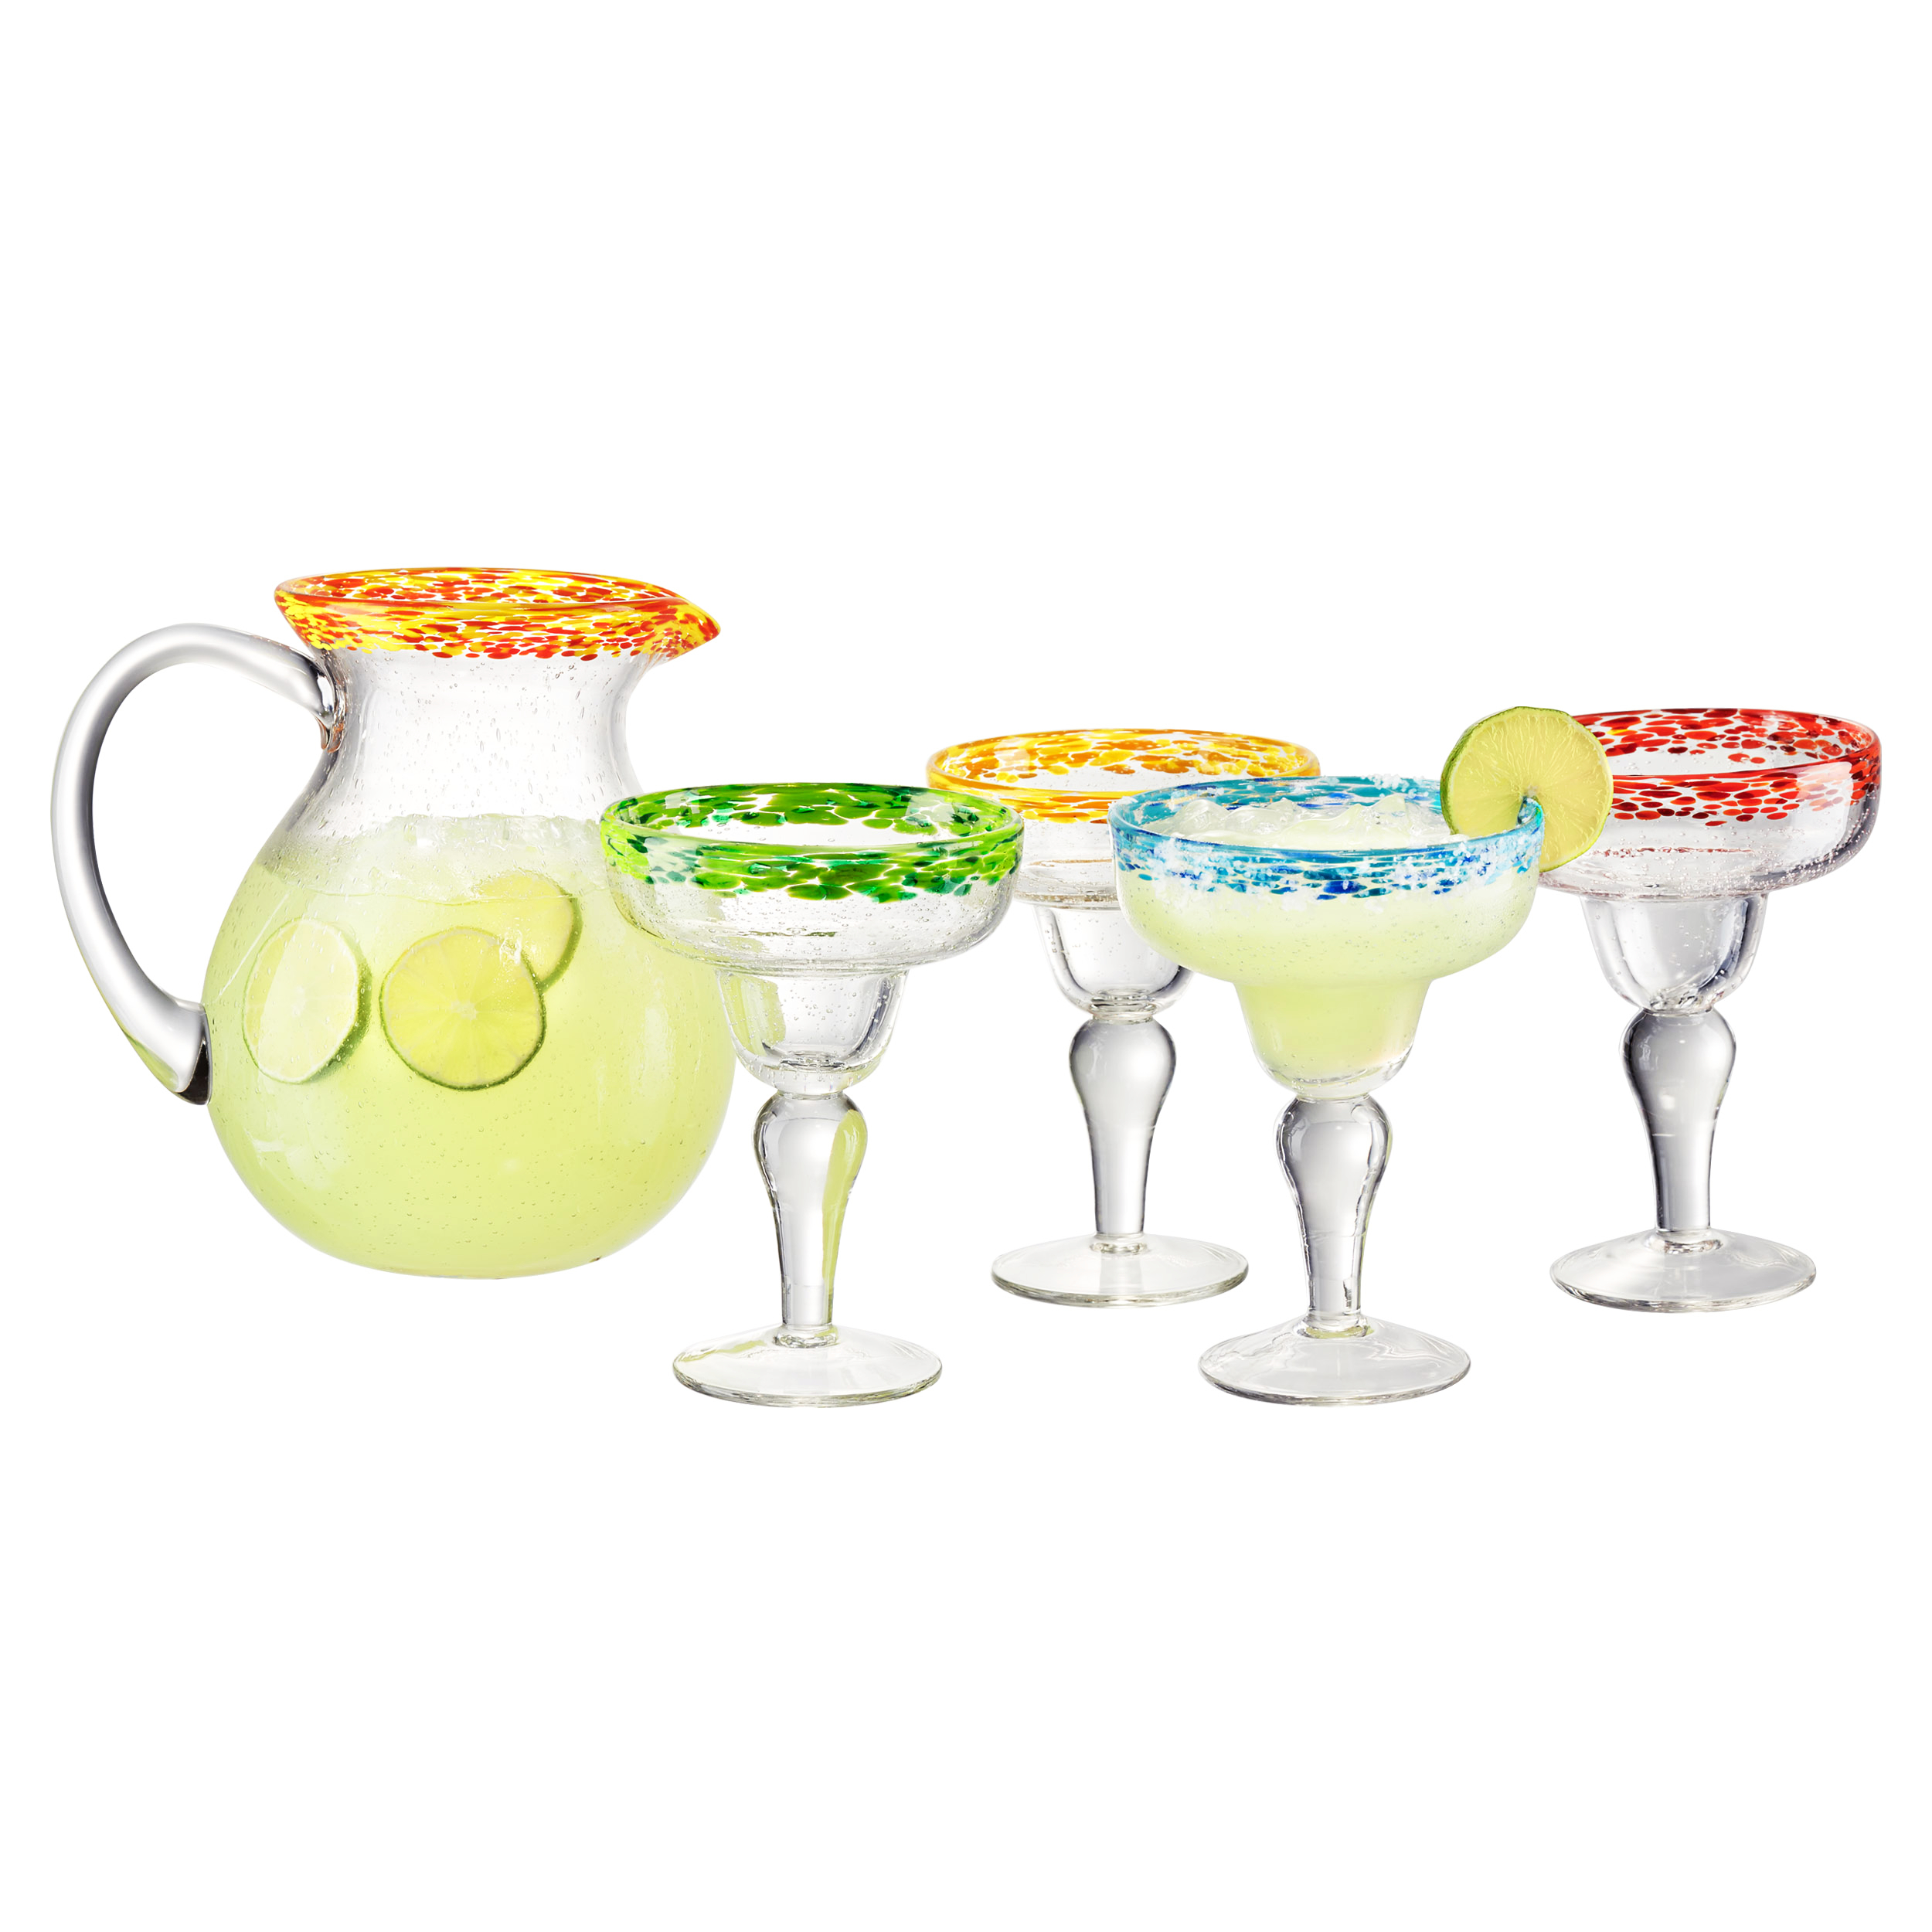 Artland Mingle 5 Piece Margarita Pitcher and Cocktail Glass Set